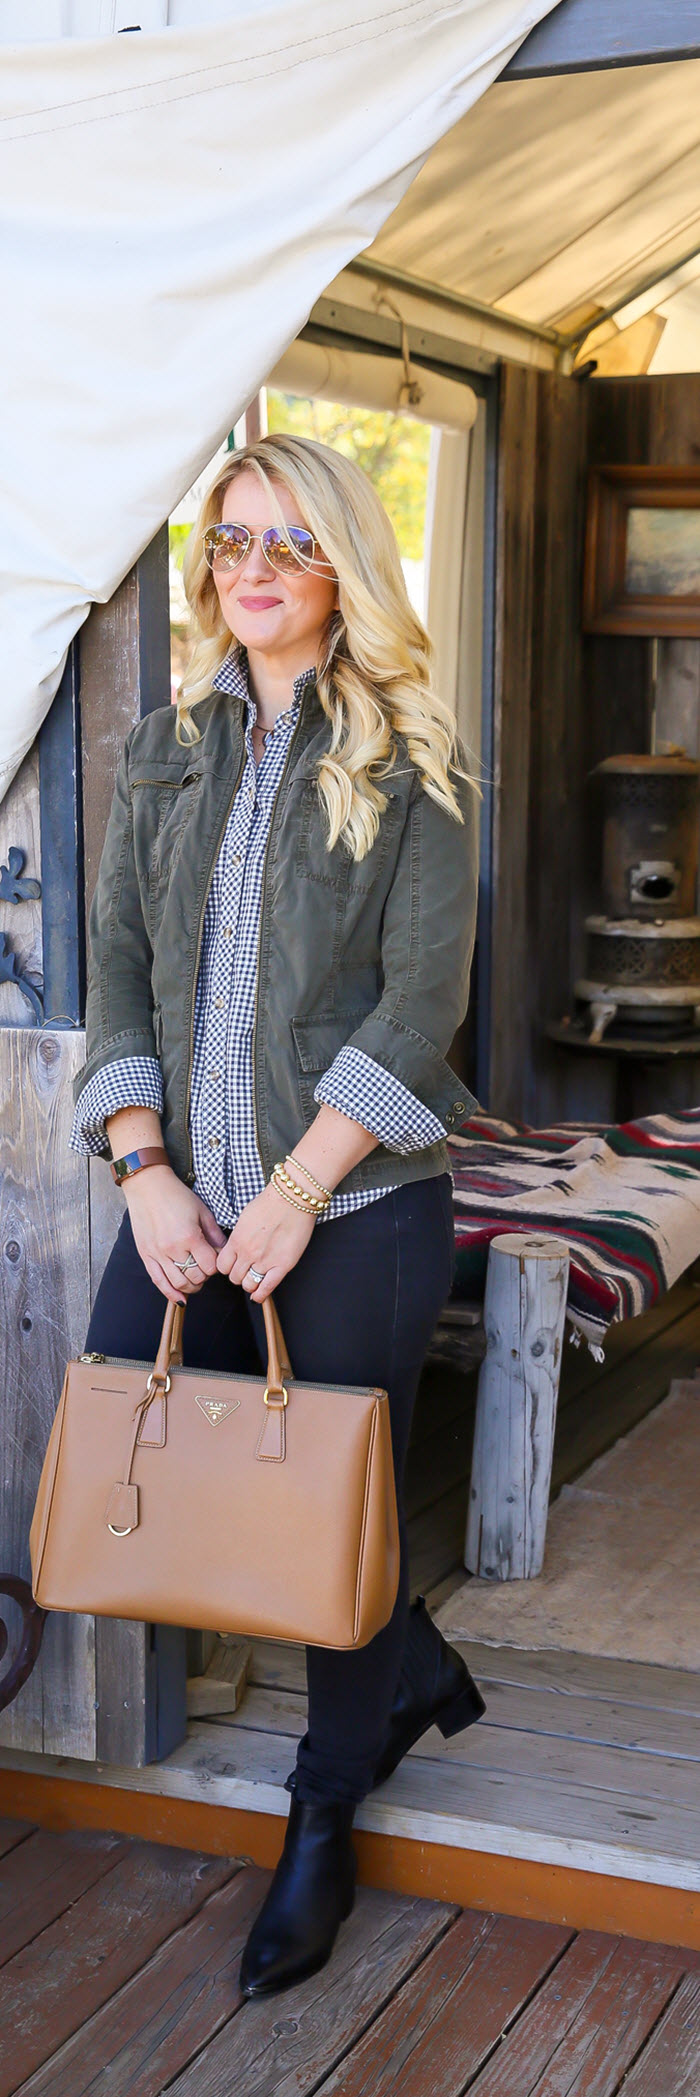 How to Dress Up Flannel Shirts with Jeans Outfit for Women. Fall Outfits for Women over 30.